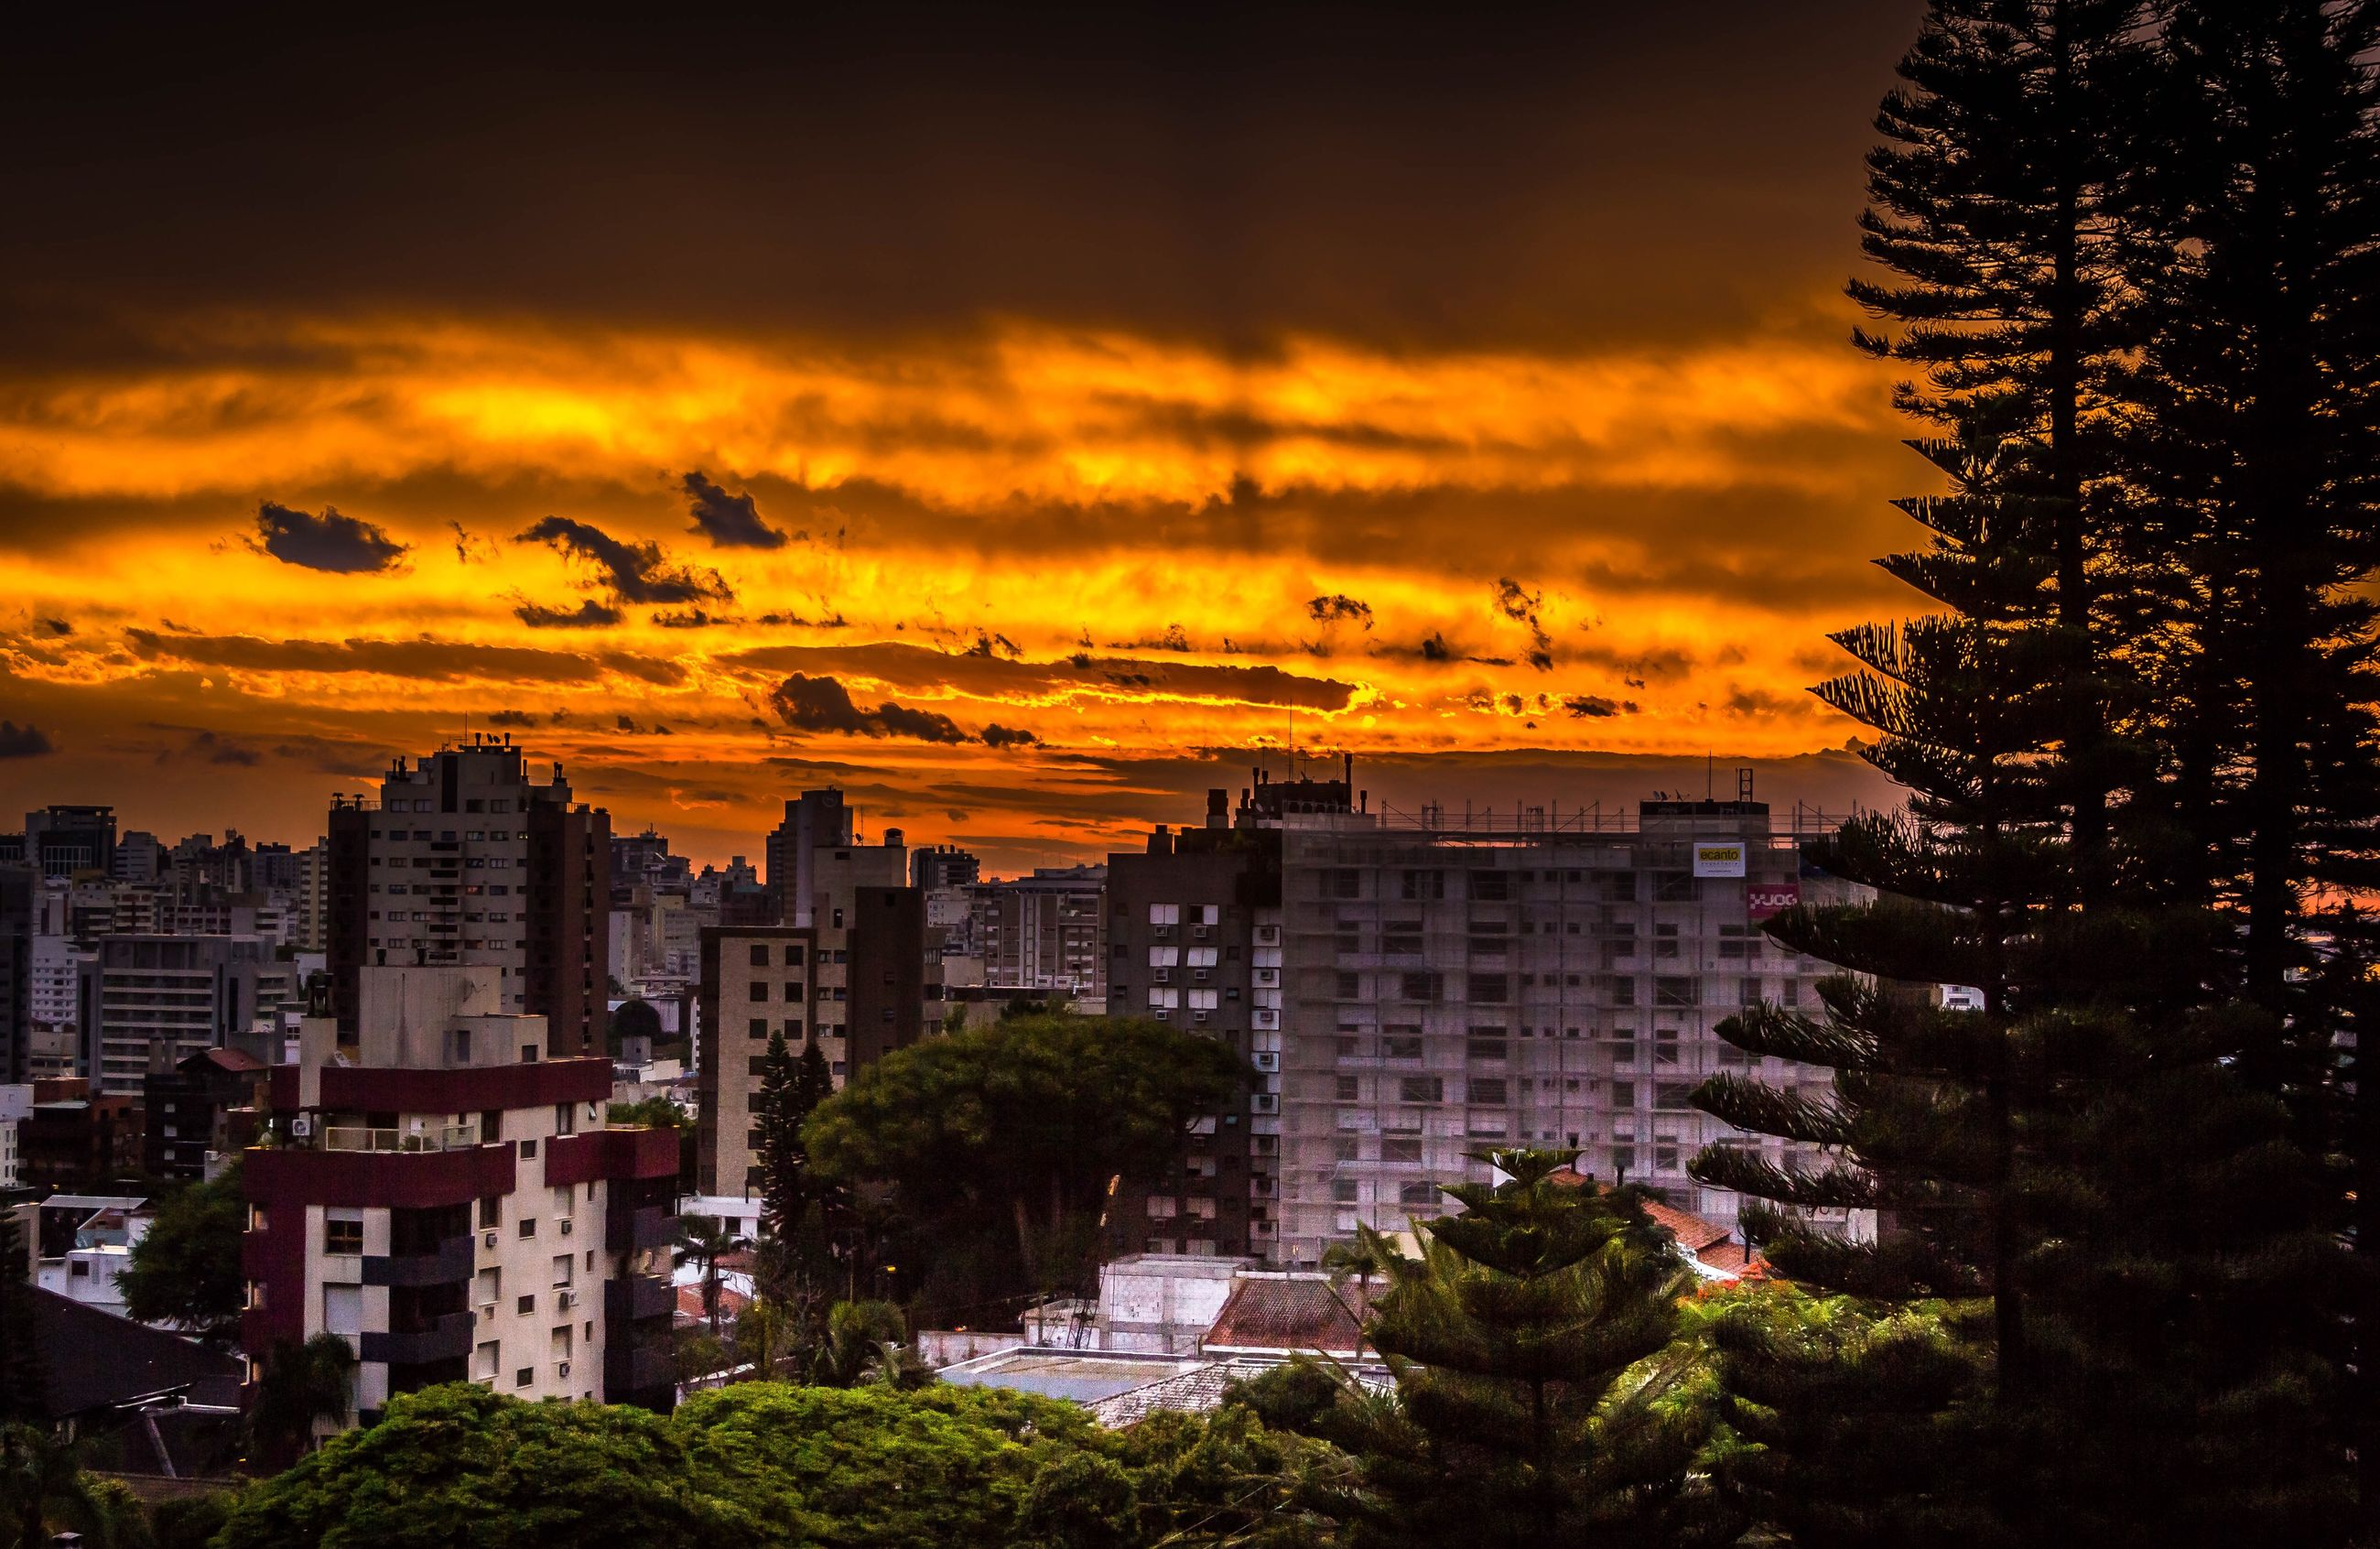 cityscape, urban skyline, sunset, city, building exterior, architecture, skyscraper, travel destinations, built structure, cloud - sky, business finance and industry, no people, dramatic sky, tree, sky, outdoors, scenics, nature